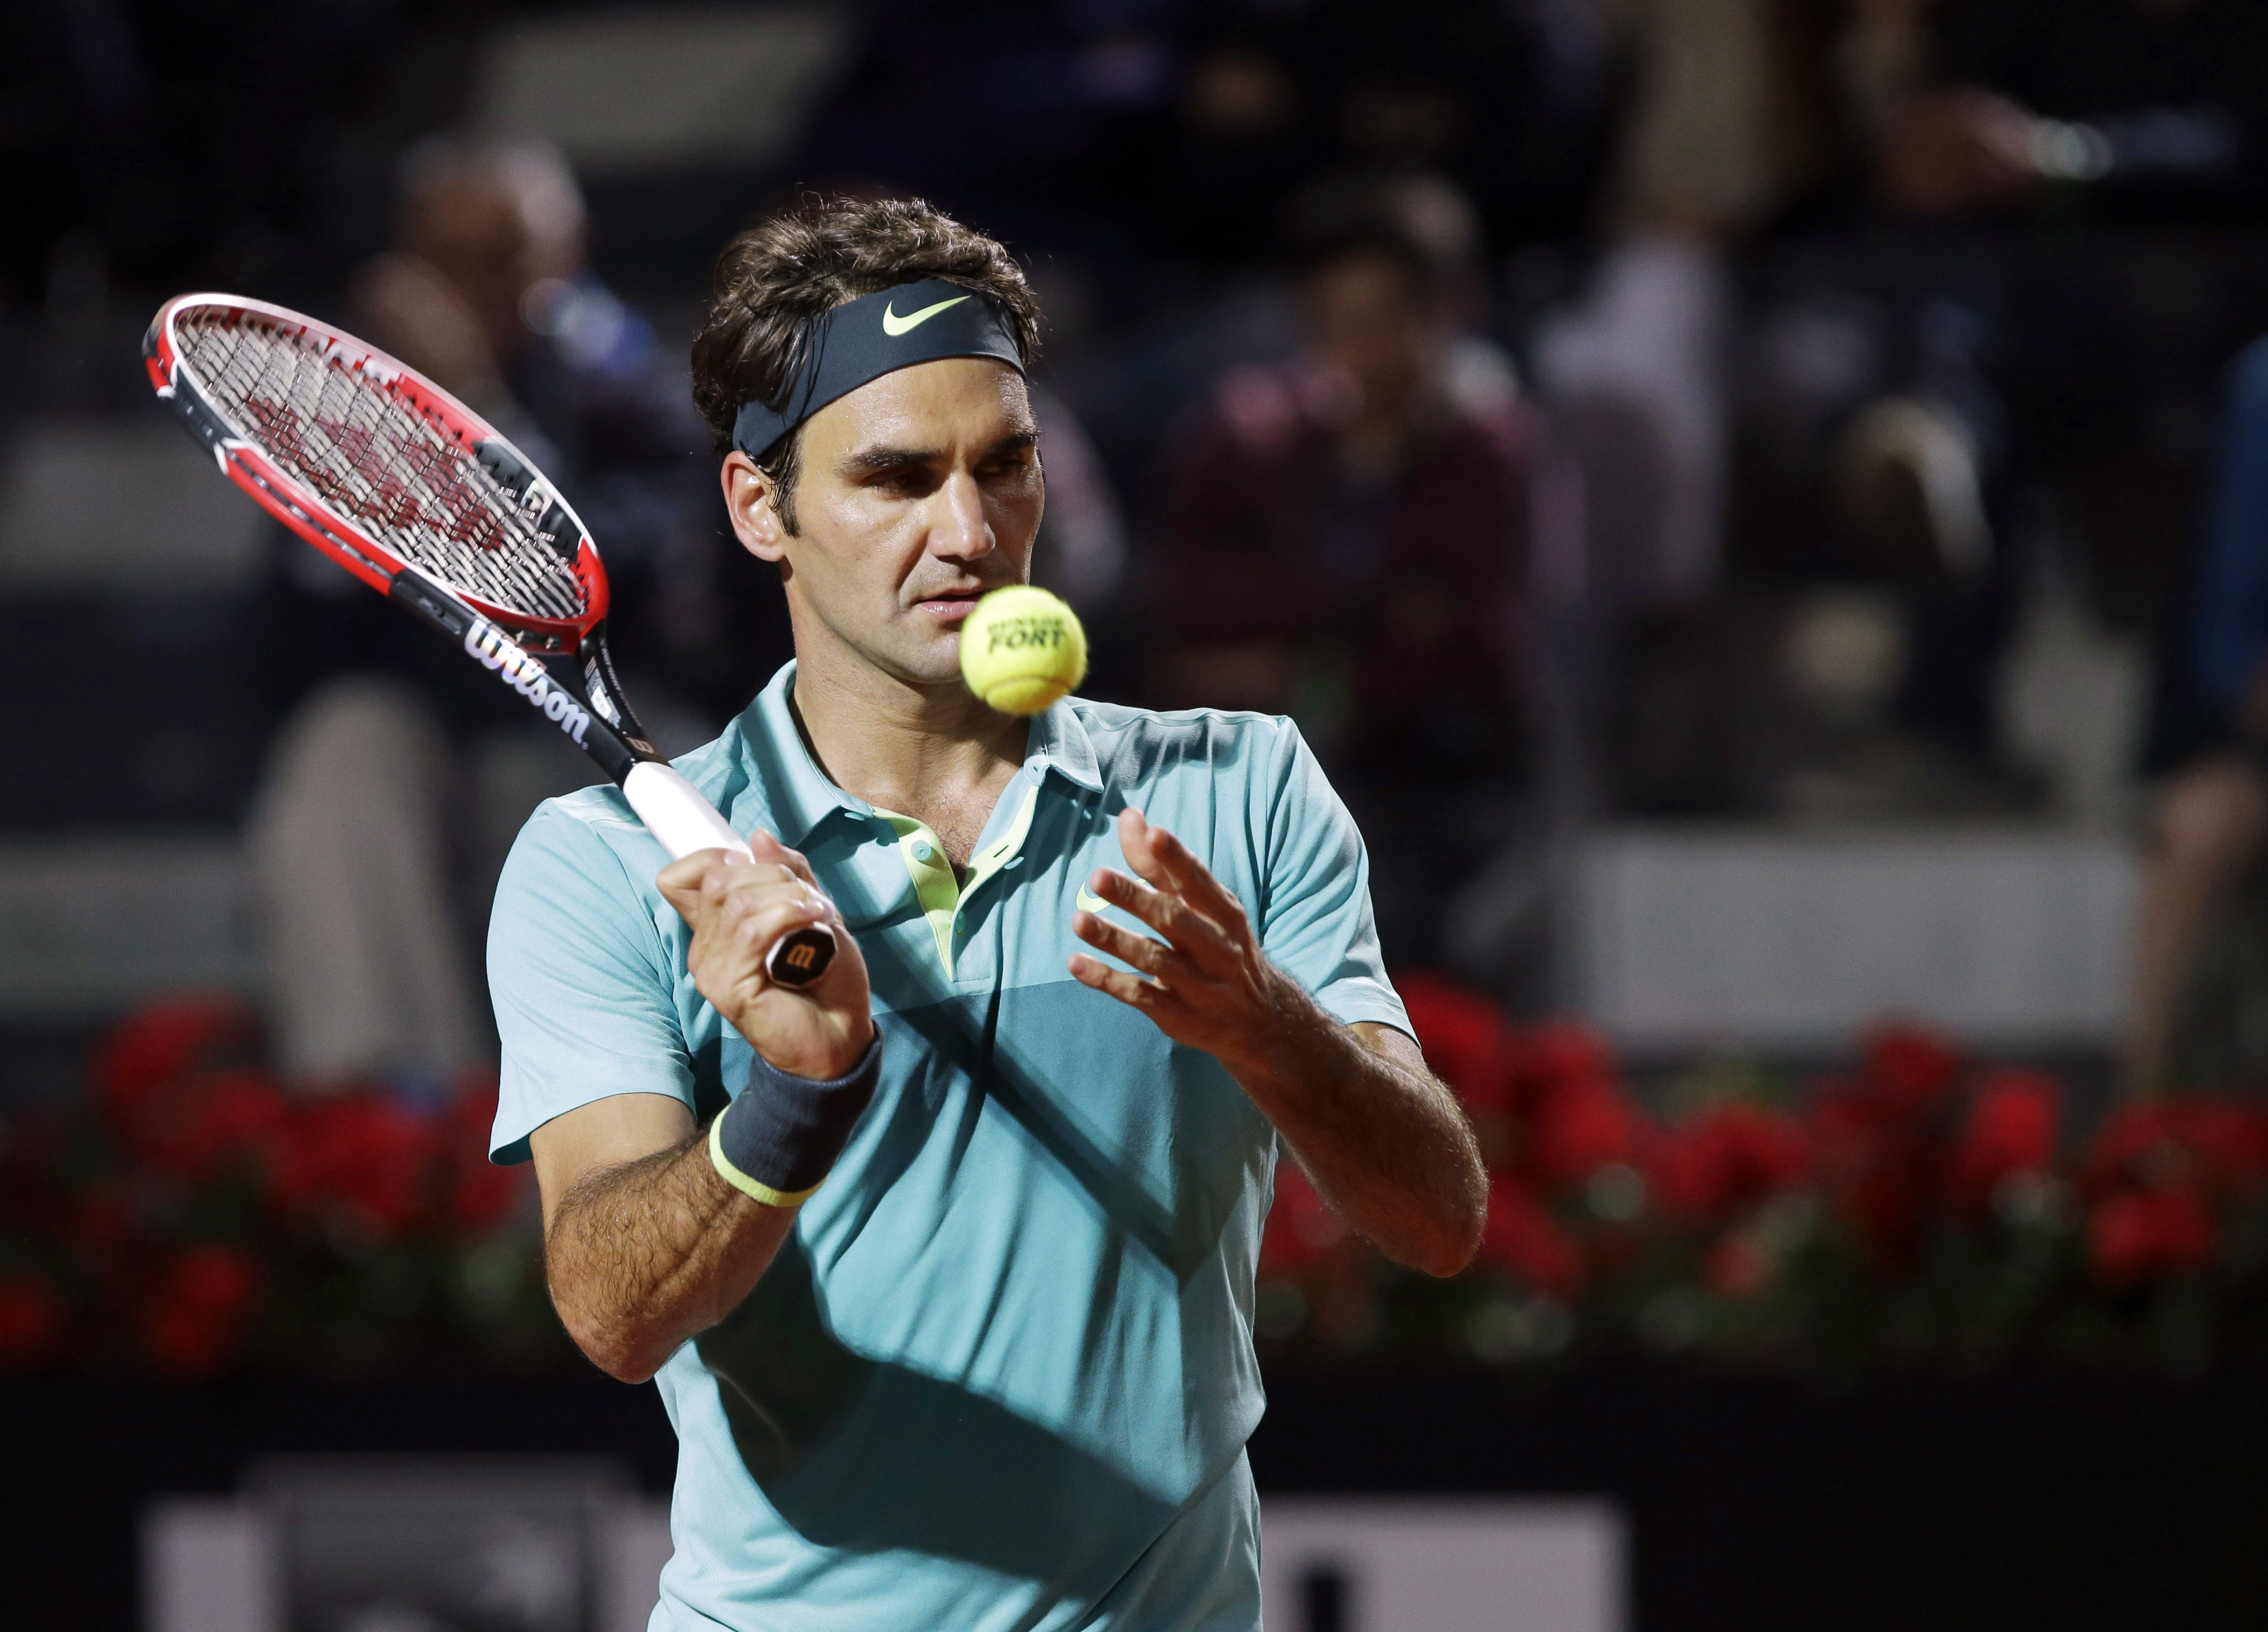 Roger Federer, of Switzerland, prepares to serve the ball to his compatriot Stan Wawrinka during a semifinal match at the Italian Open tennis tournament, in Rome, Saturday, May 16, 2015. Federer beat  Wawrinka 6-4, 6-2. (AP Photo/Alessandra Tarantino)